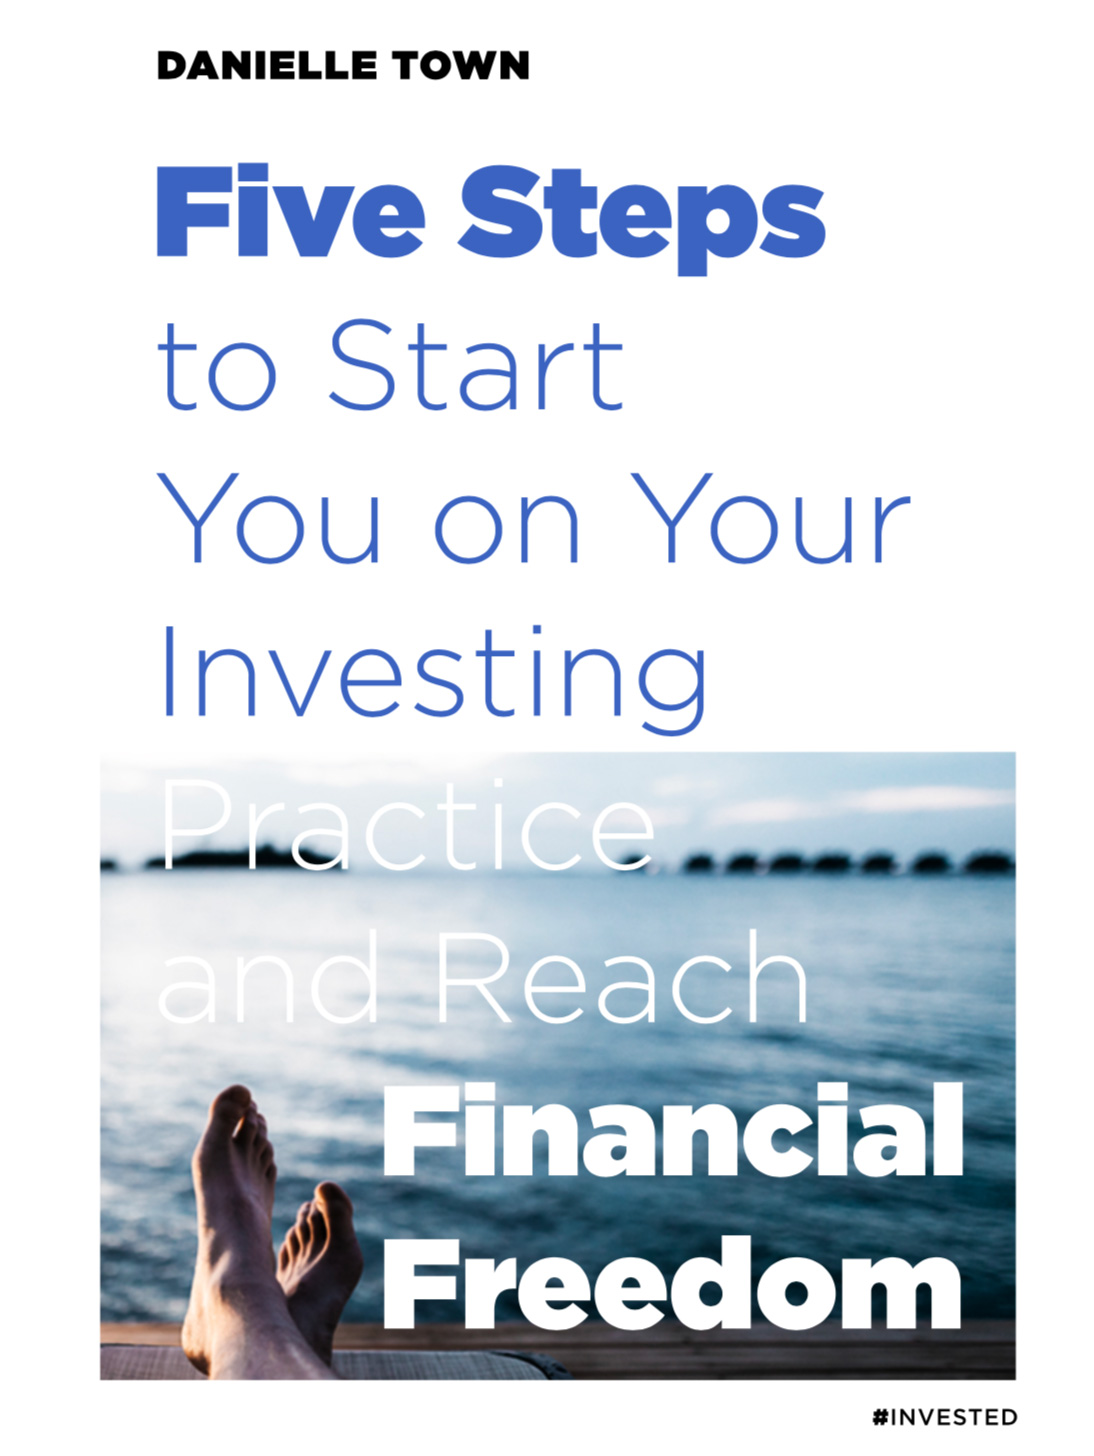 Five Steps to Start Your Investing Journey to Reach Financial Freedom